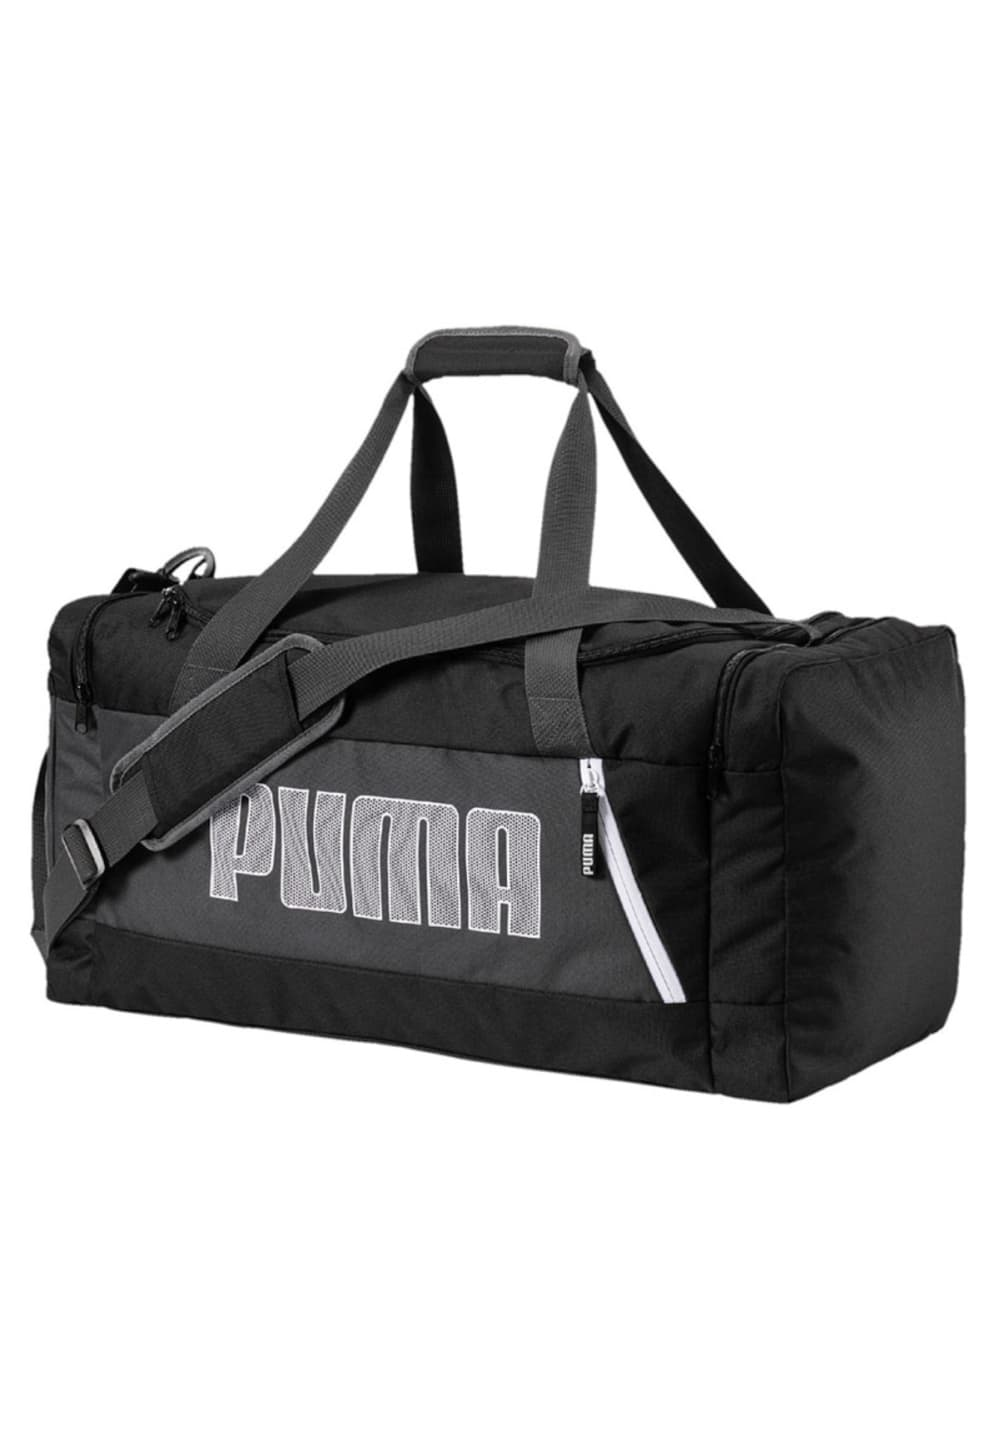 37dbcf1191 Puma Fundamentals Sports Bag M II - Sports bags - Black | 21RUN